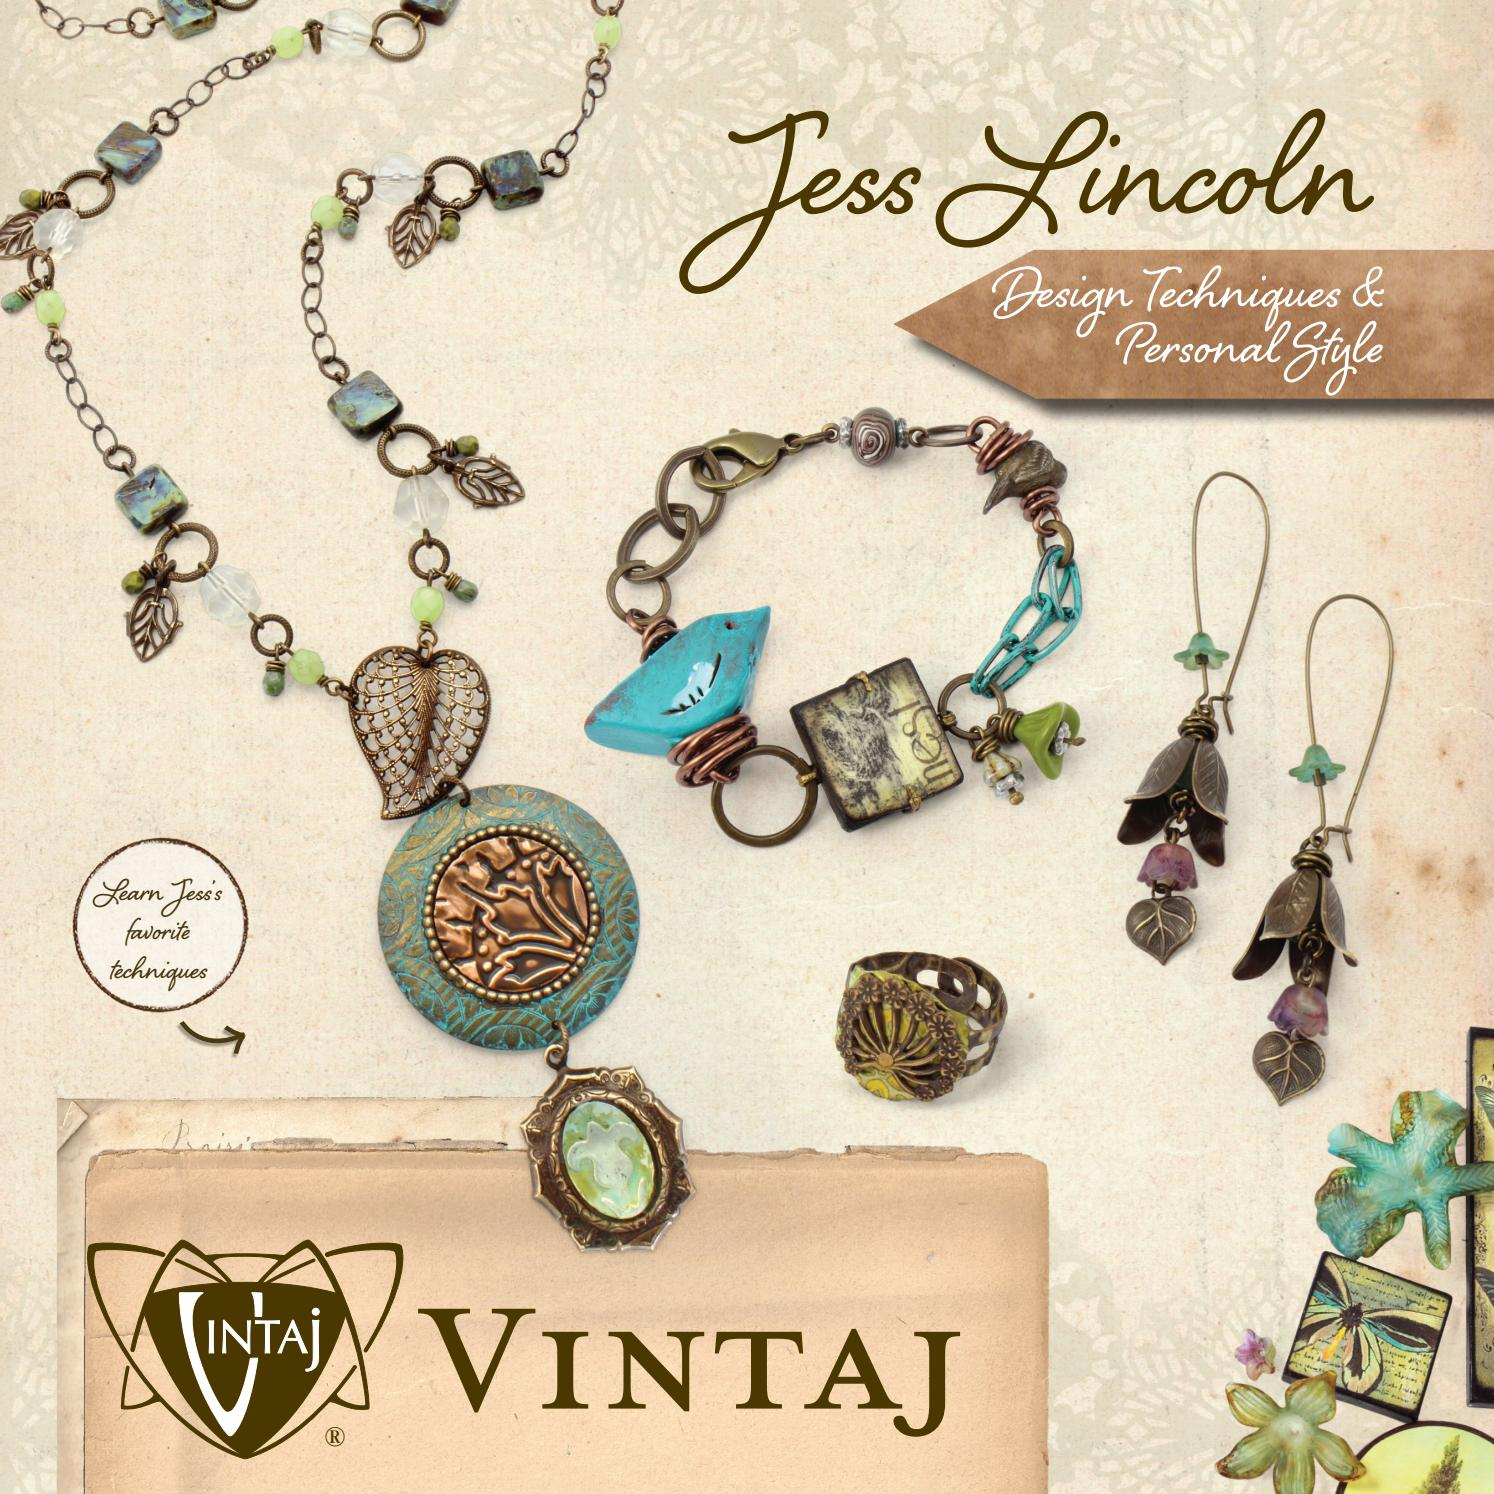 Organic Bronze Jewelry Links Organic Patina Charms Handmade Bronze Rustic Findings Plant Components Artisan Findings